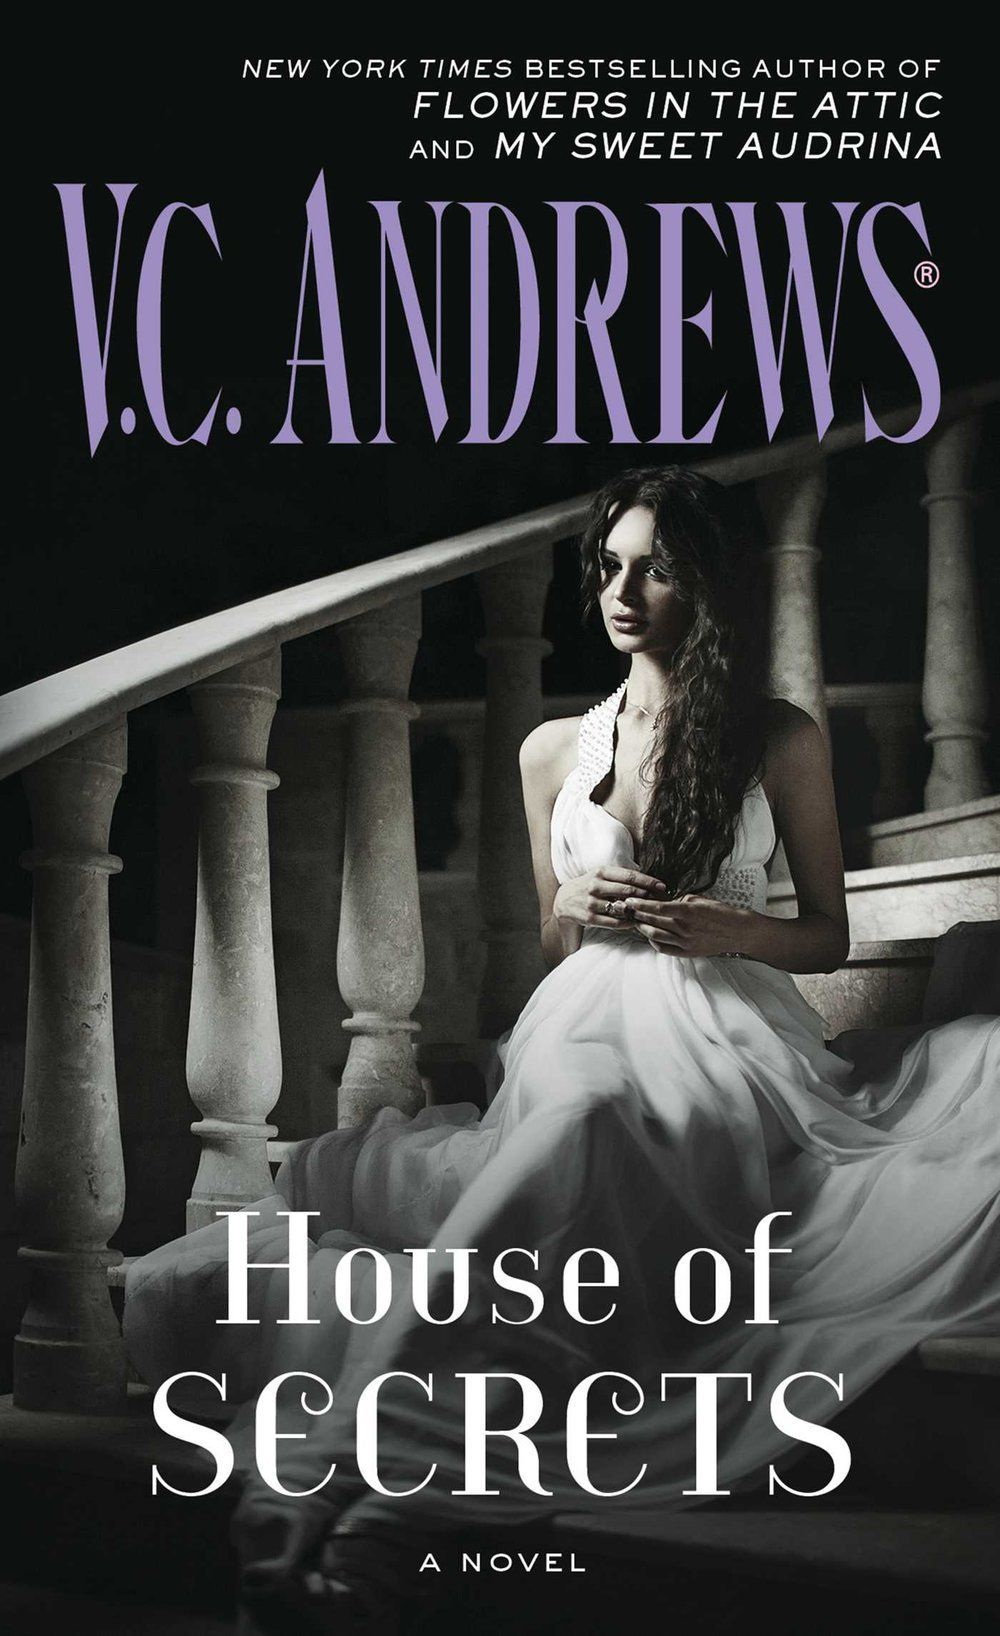 House of secrets by v c andrews what is that book